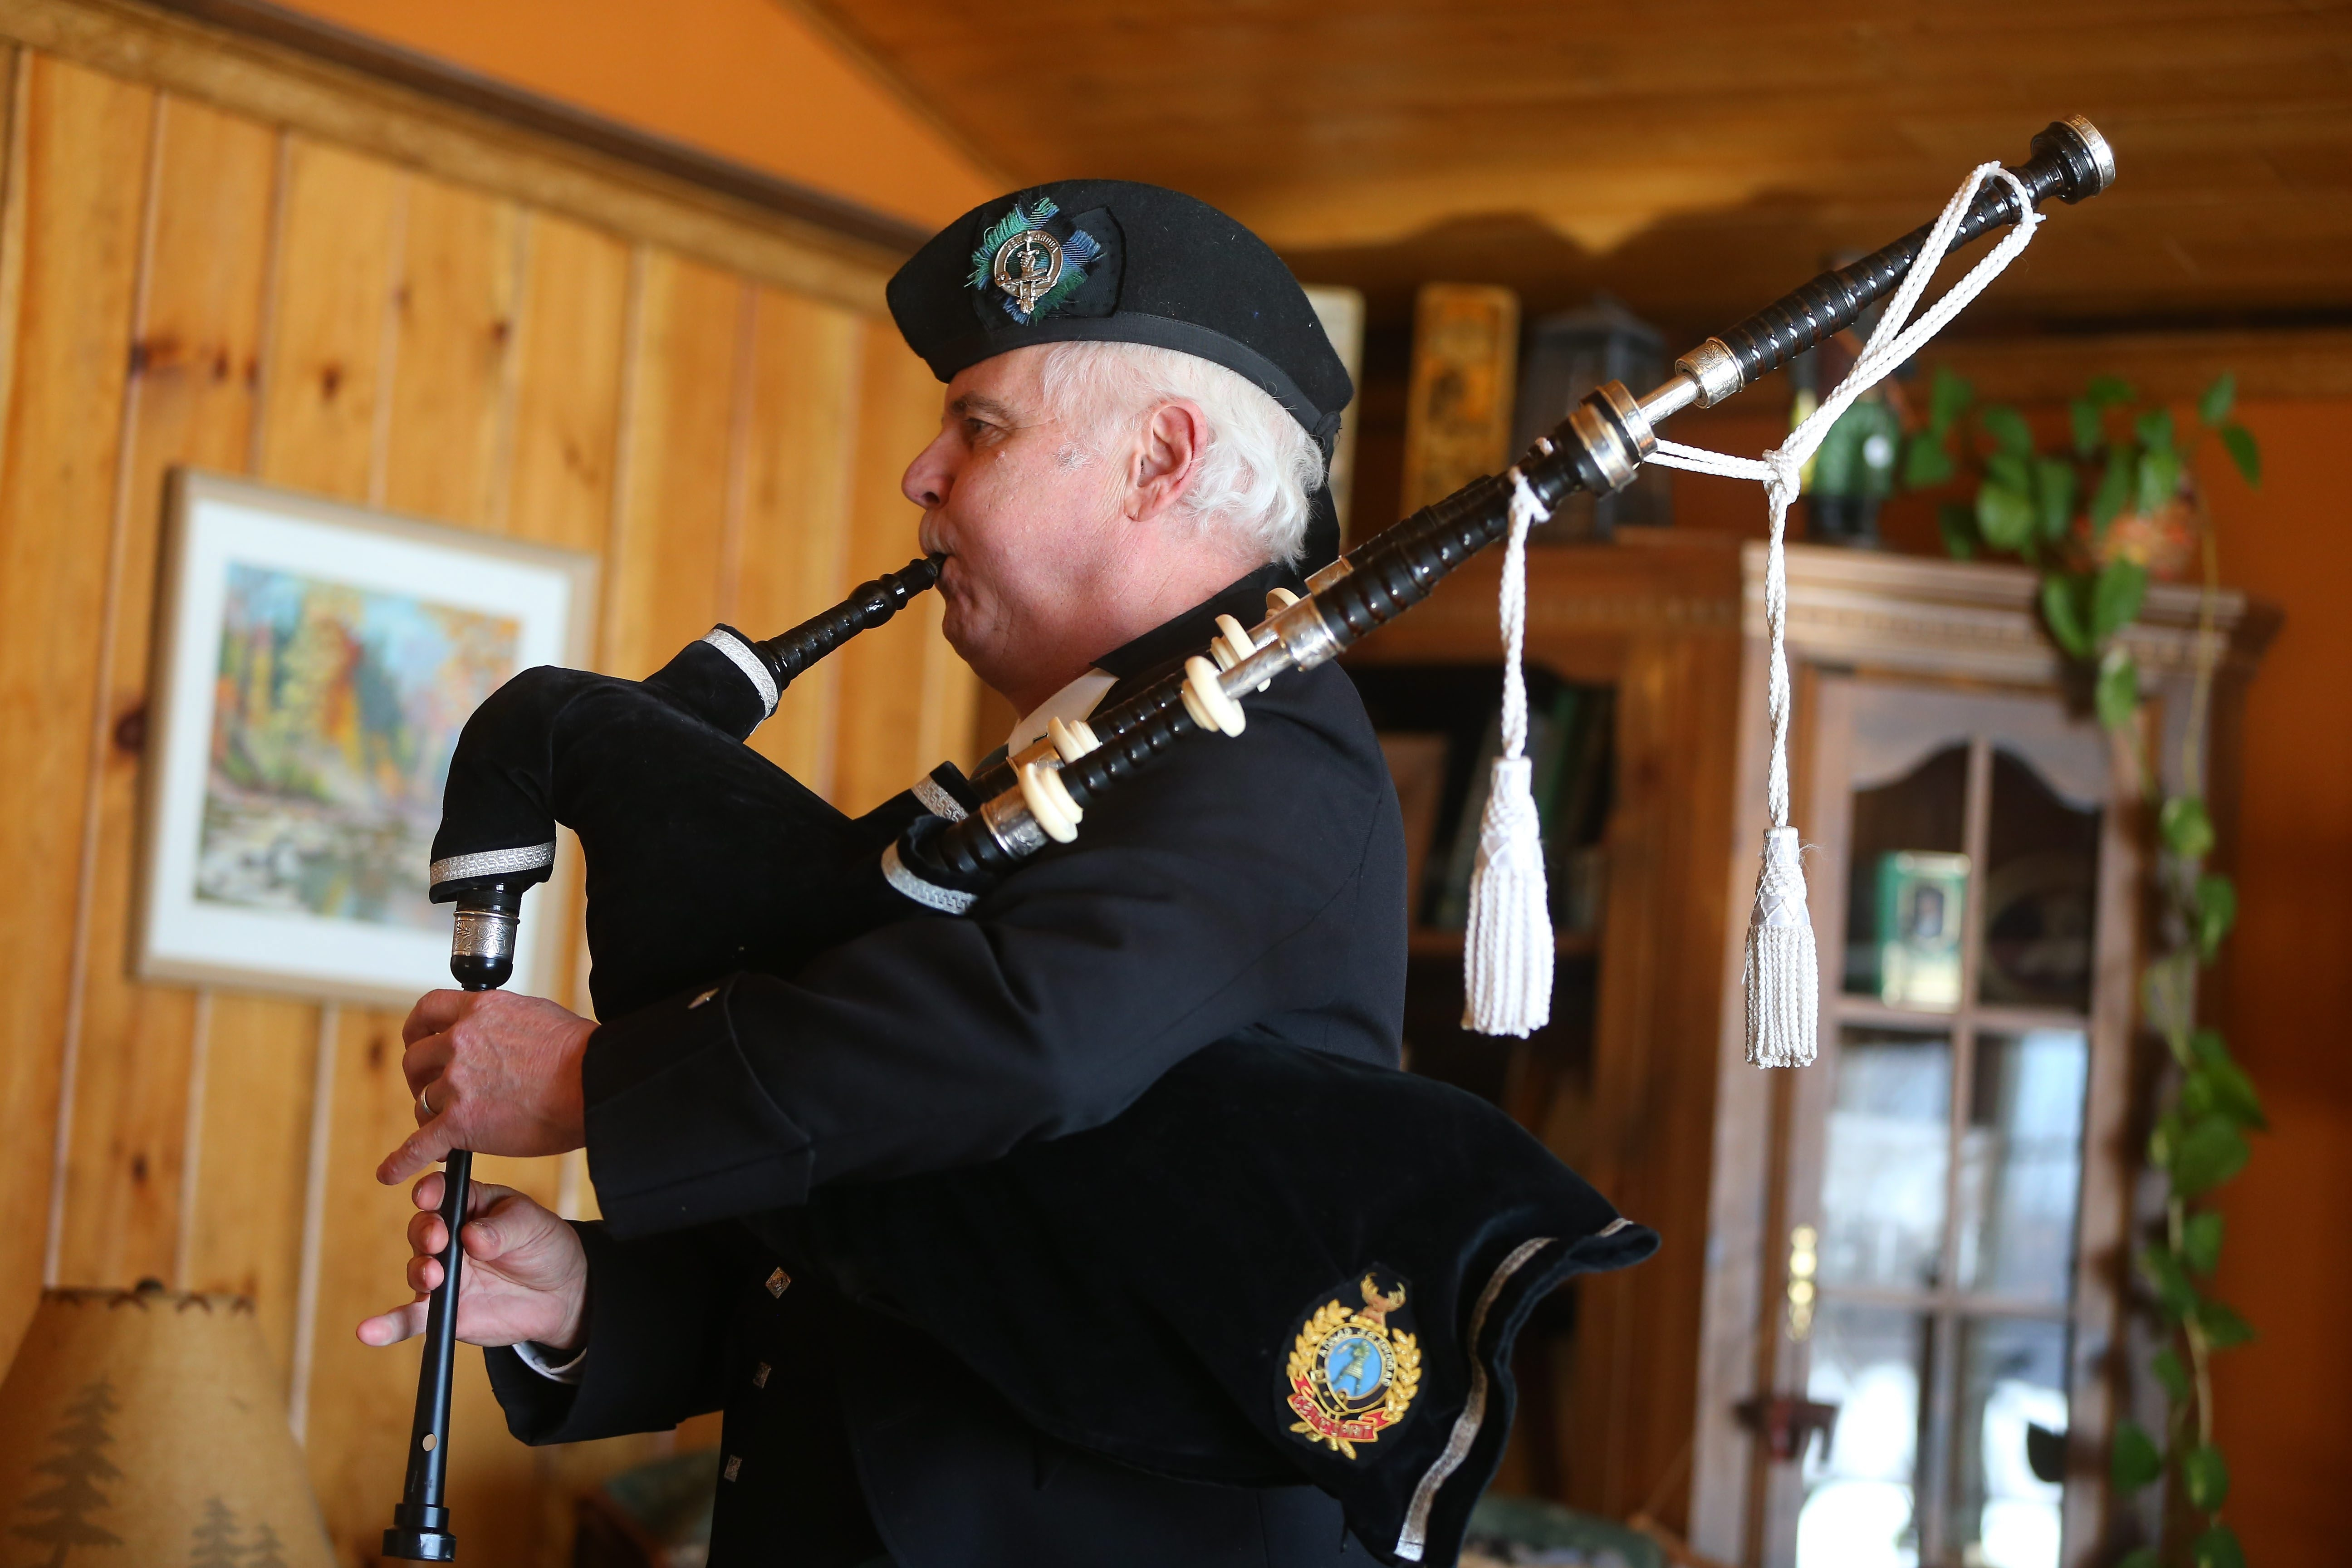 Joseph Baschnagel will be playing as usual at noon Tuesday when the Lockport chapter of the Ancient Order of Hibernians holds its annual St. Patrick's Day Mass in All Saints Catholic Church.